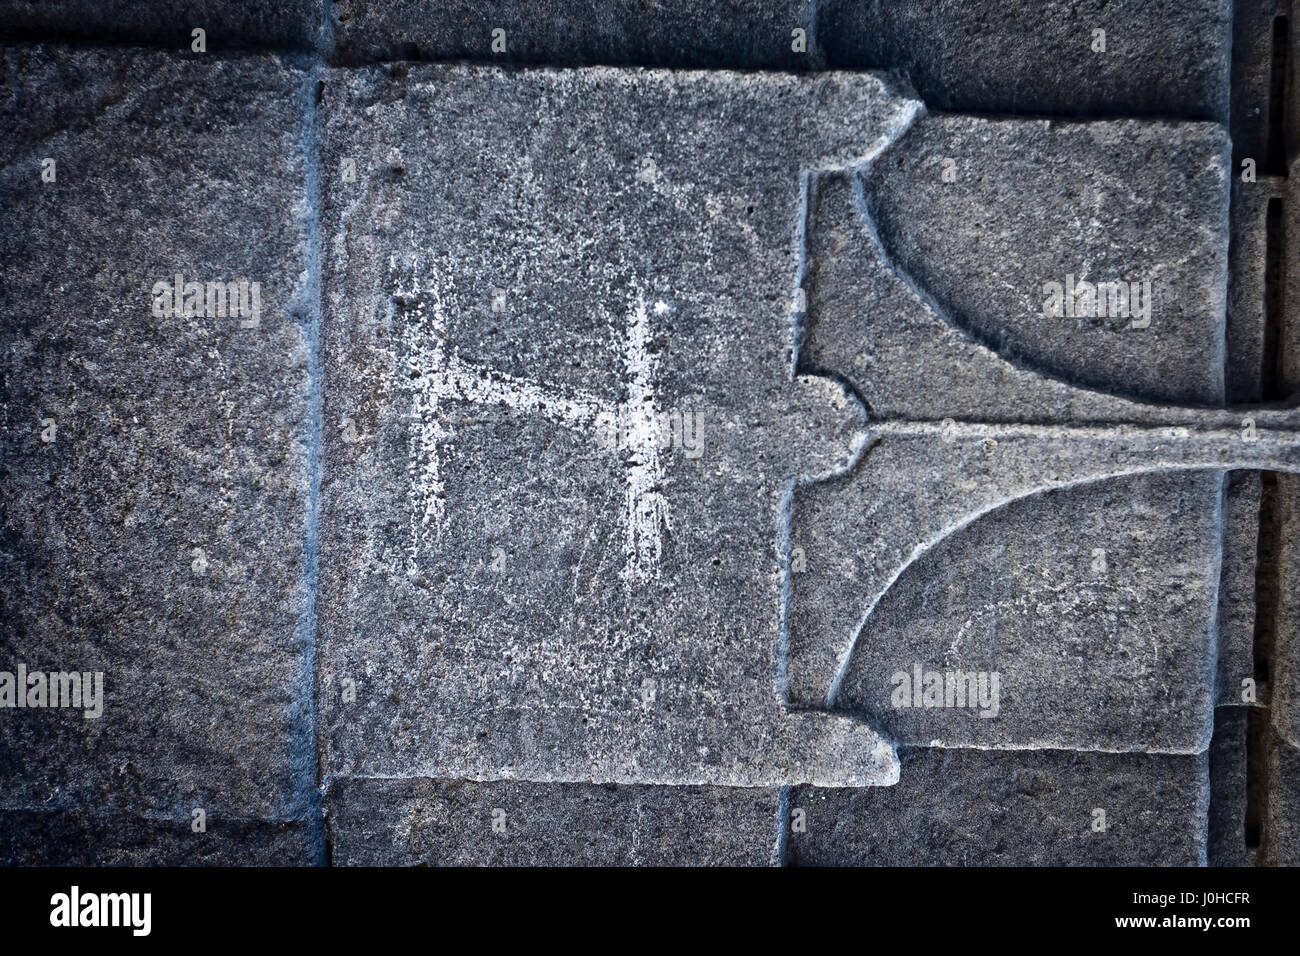 stone carving as a background & texture. - Stock Image